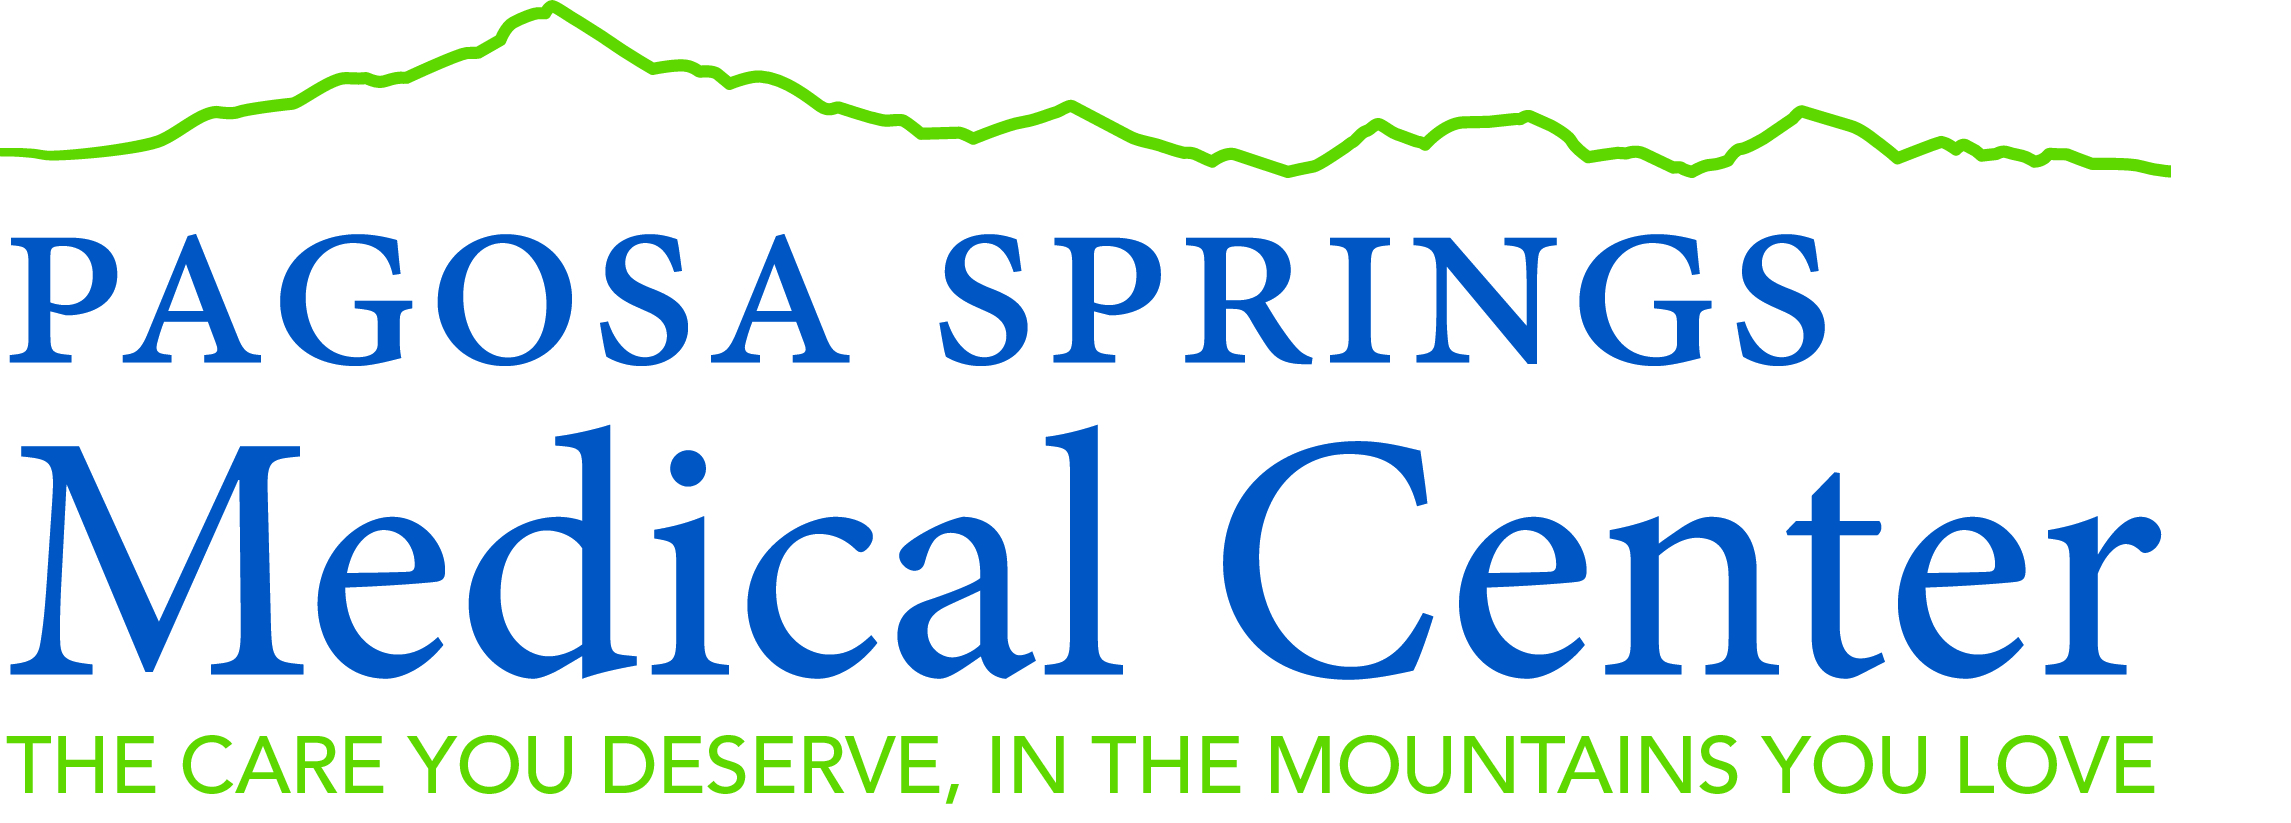 Pagosa Springs Medical Center